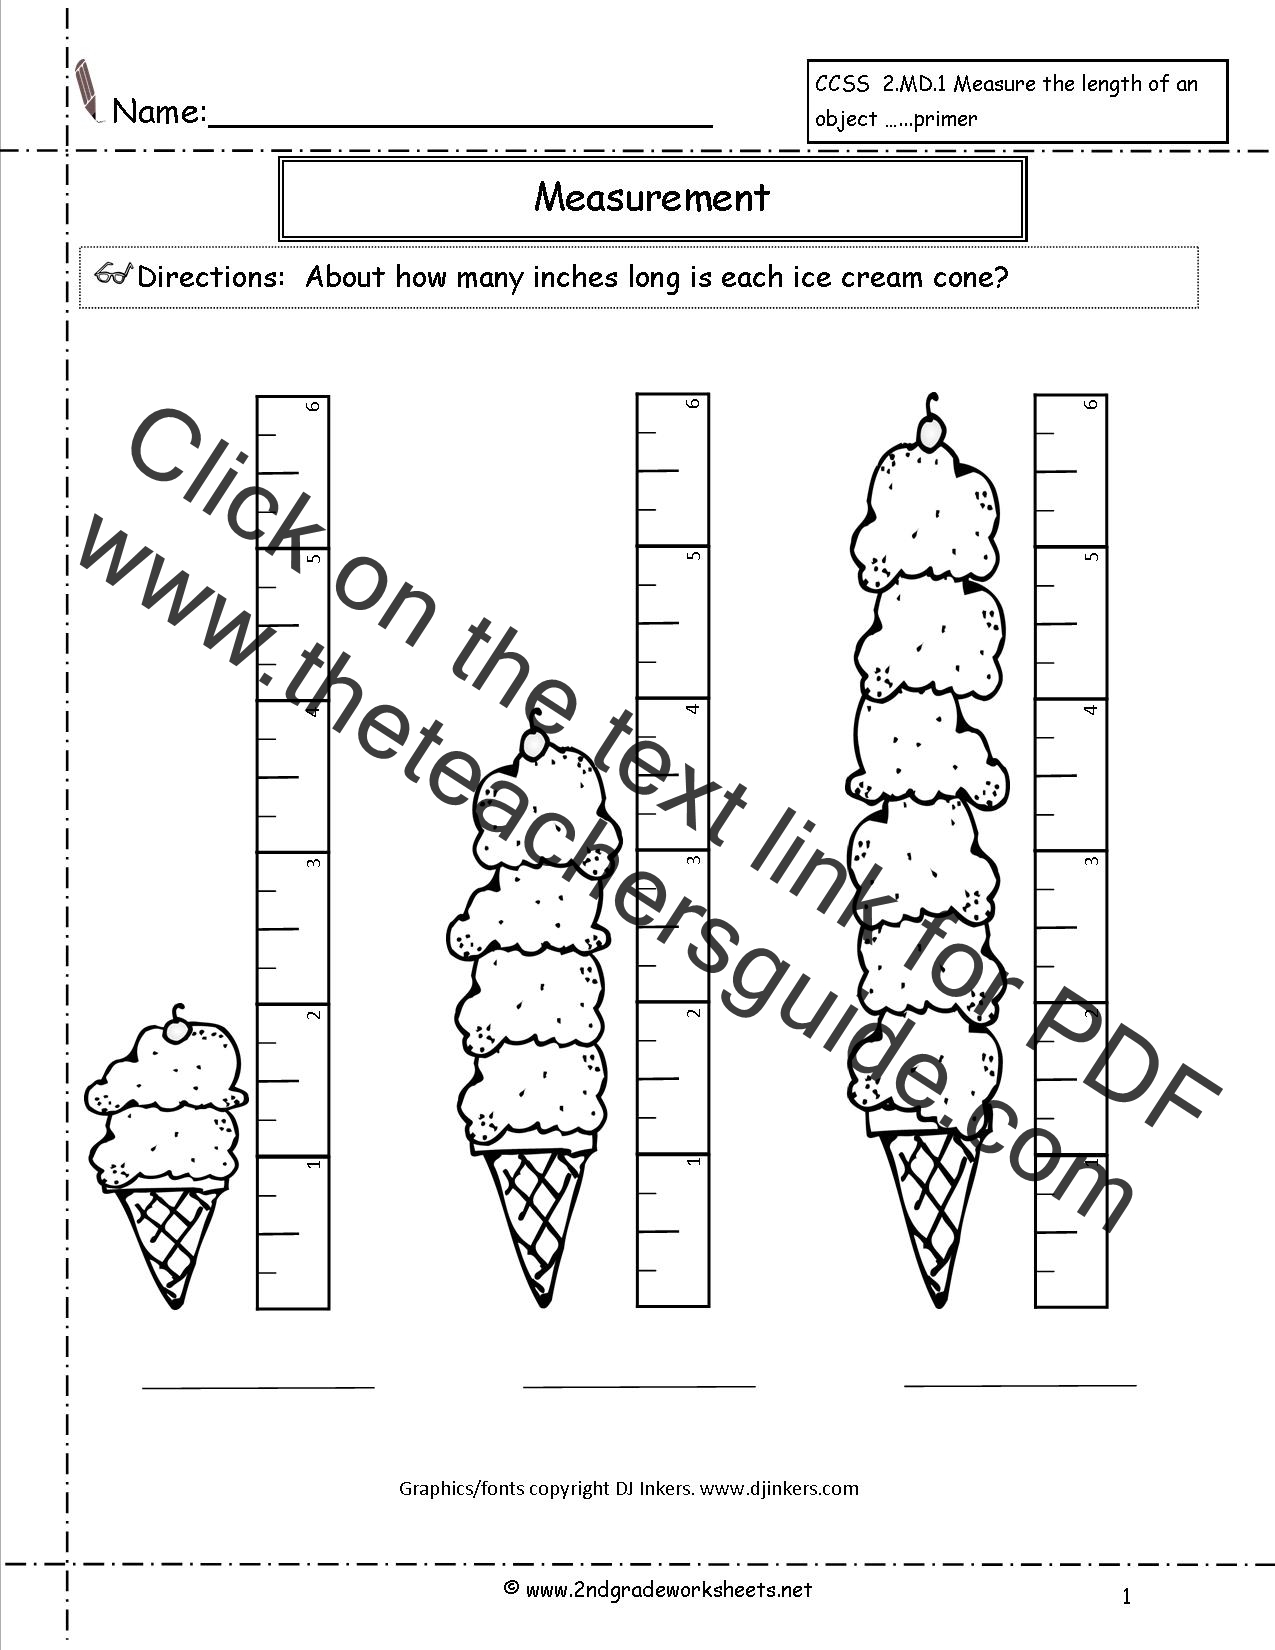 Worksheets Measurement Worksheets Grade 1 ccss 2 md 1 worksheets measuring worksheet